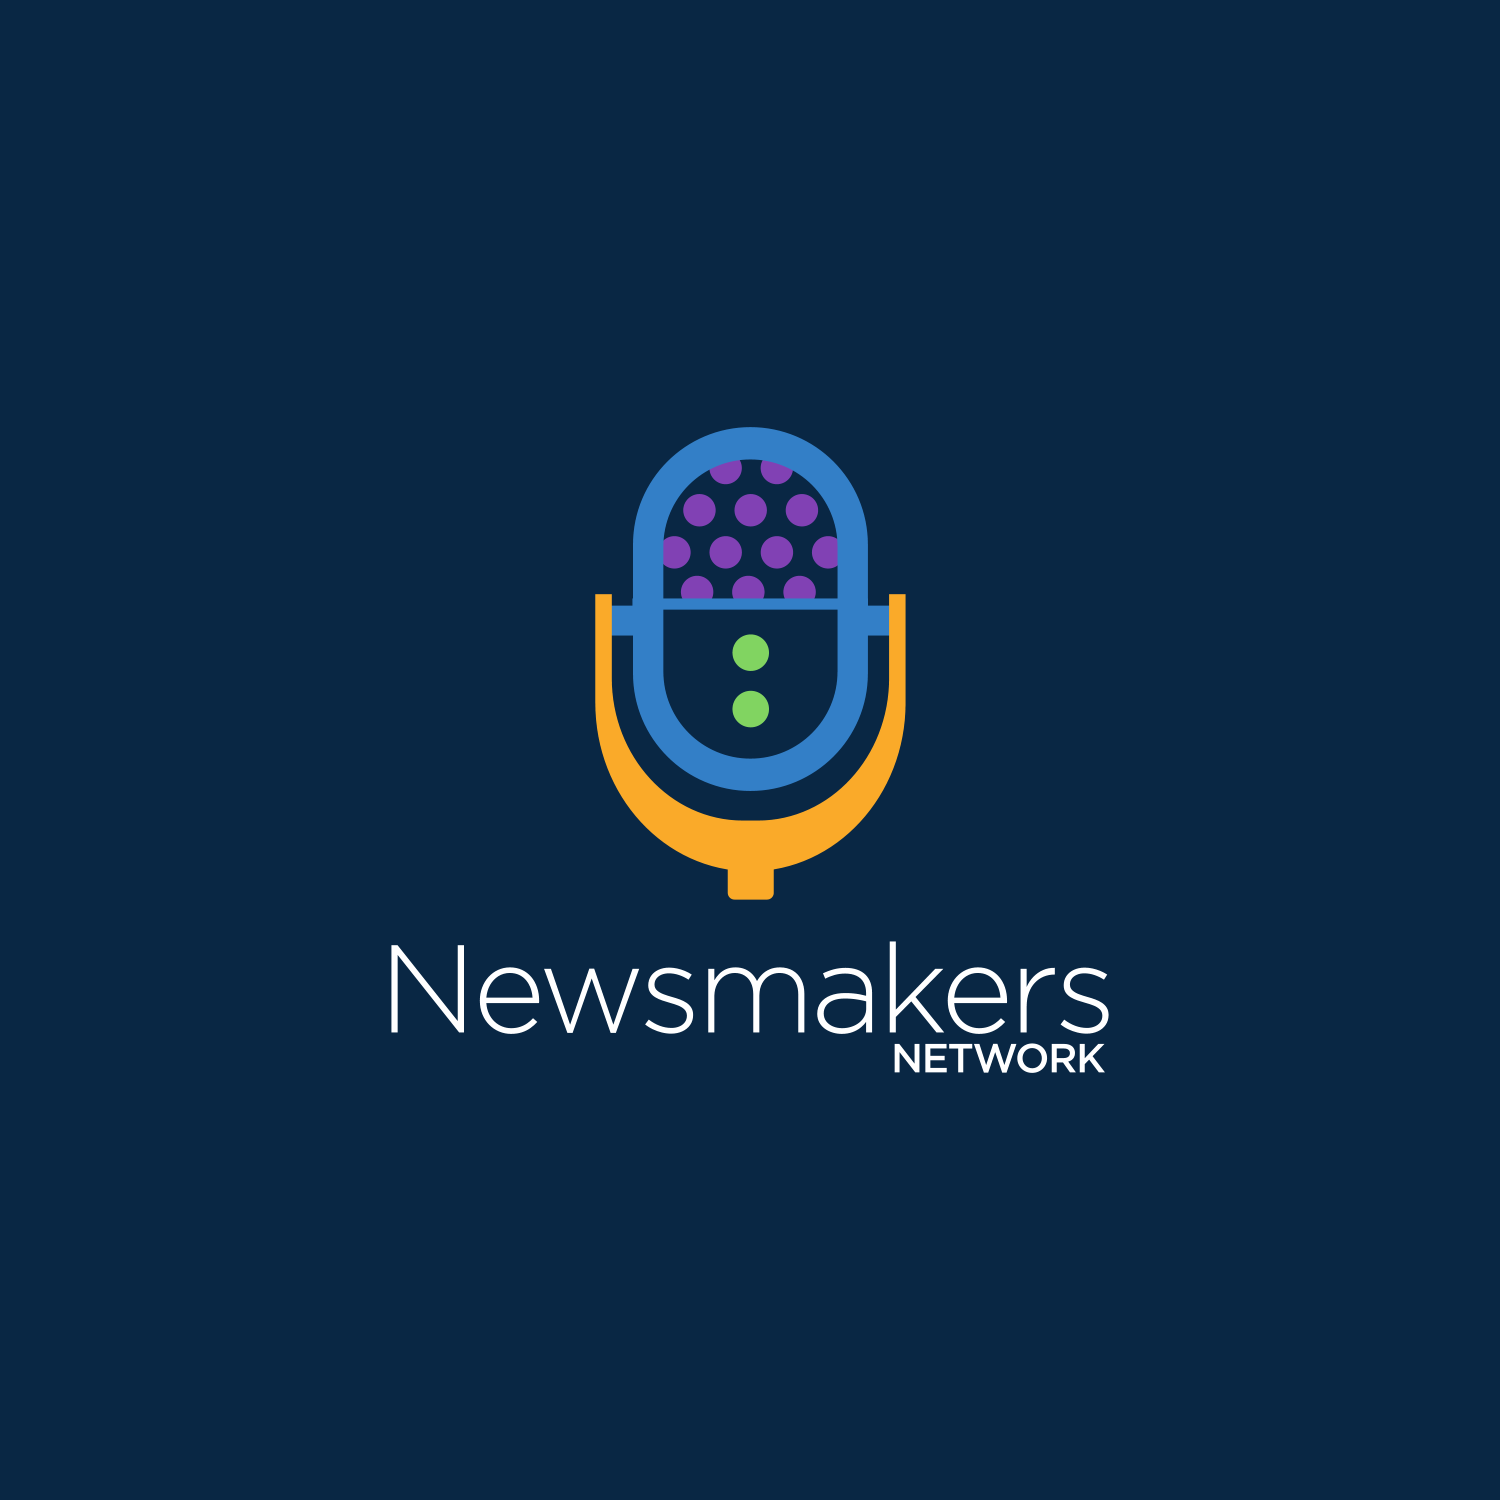 Newsmakers Network Logo